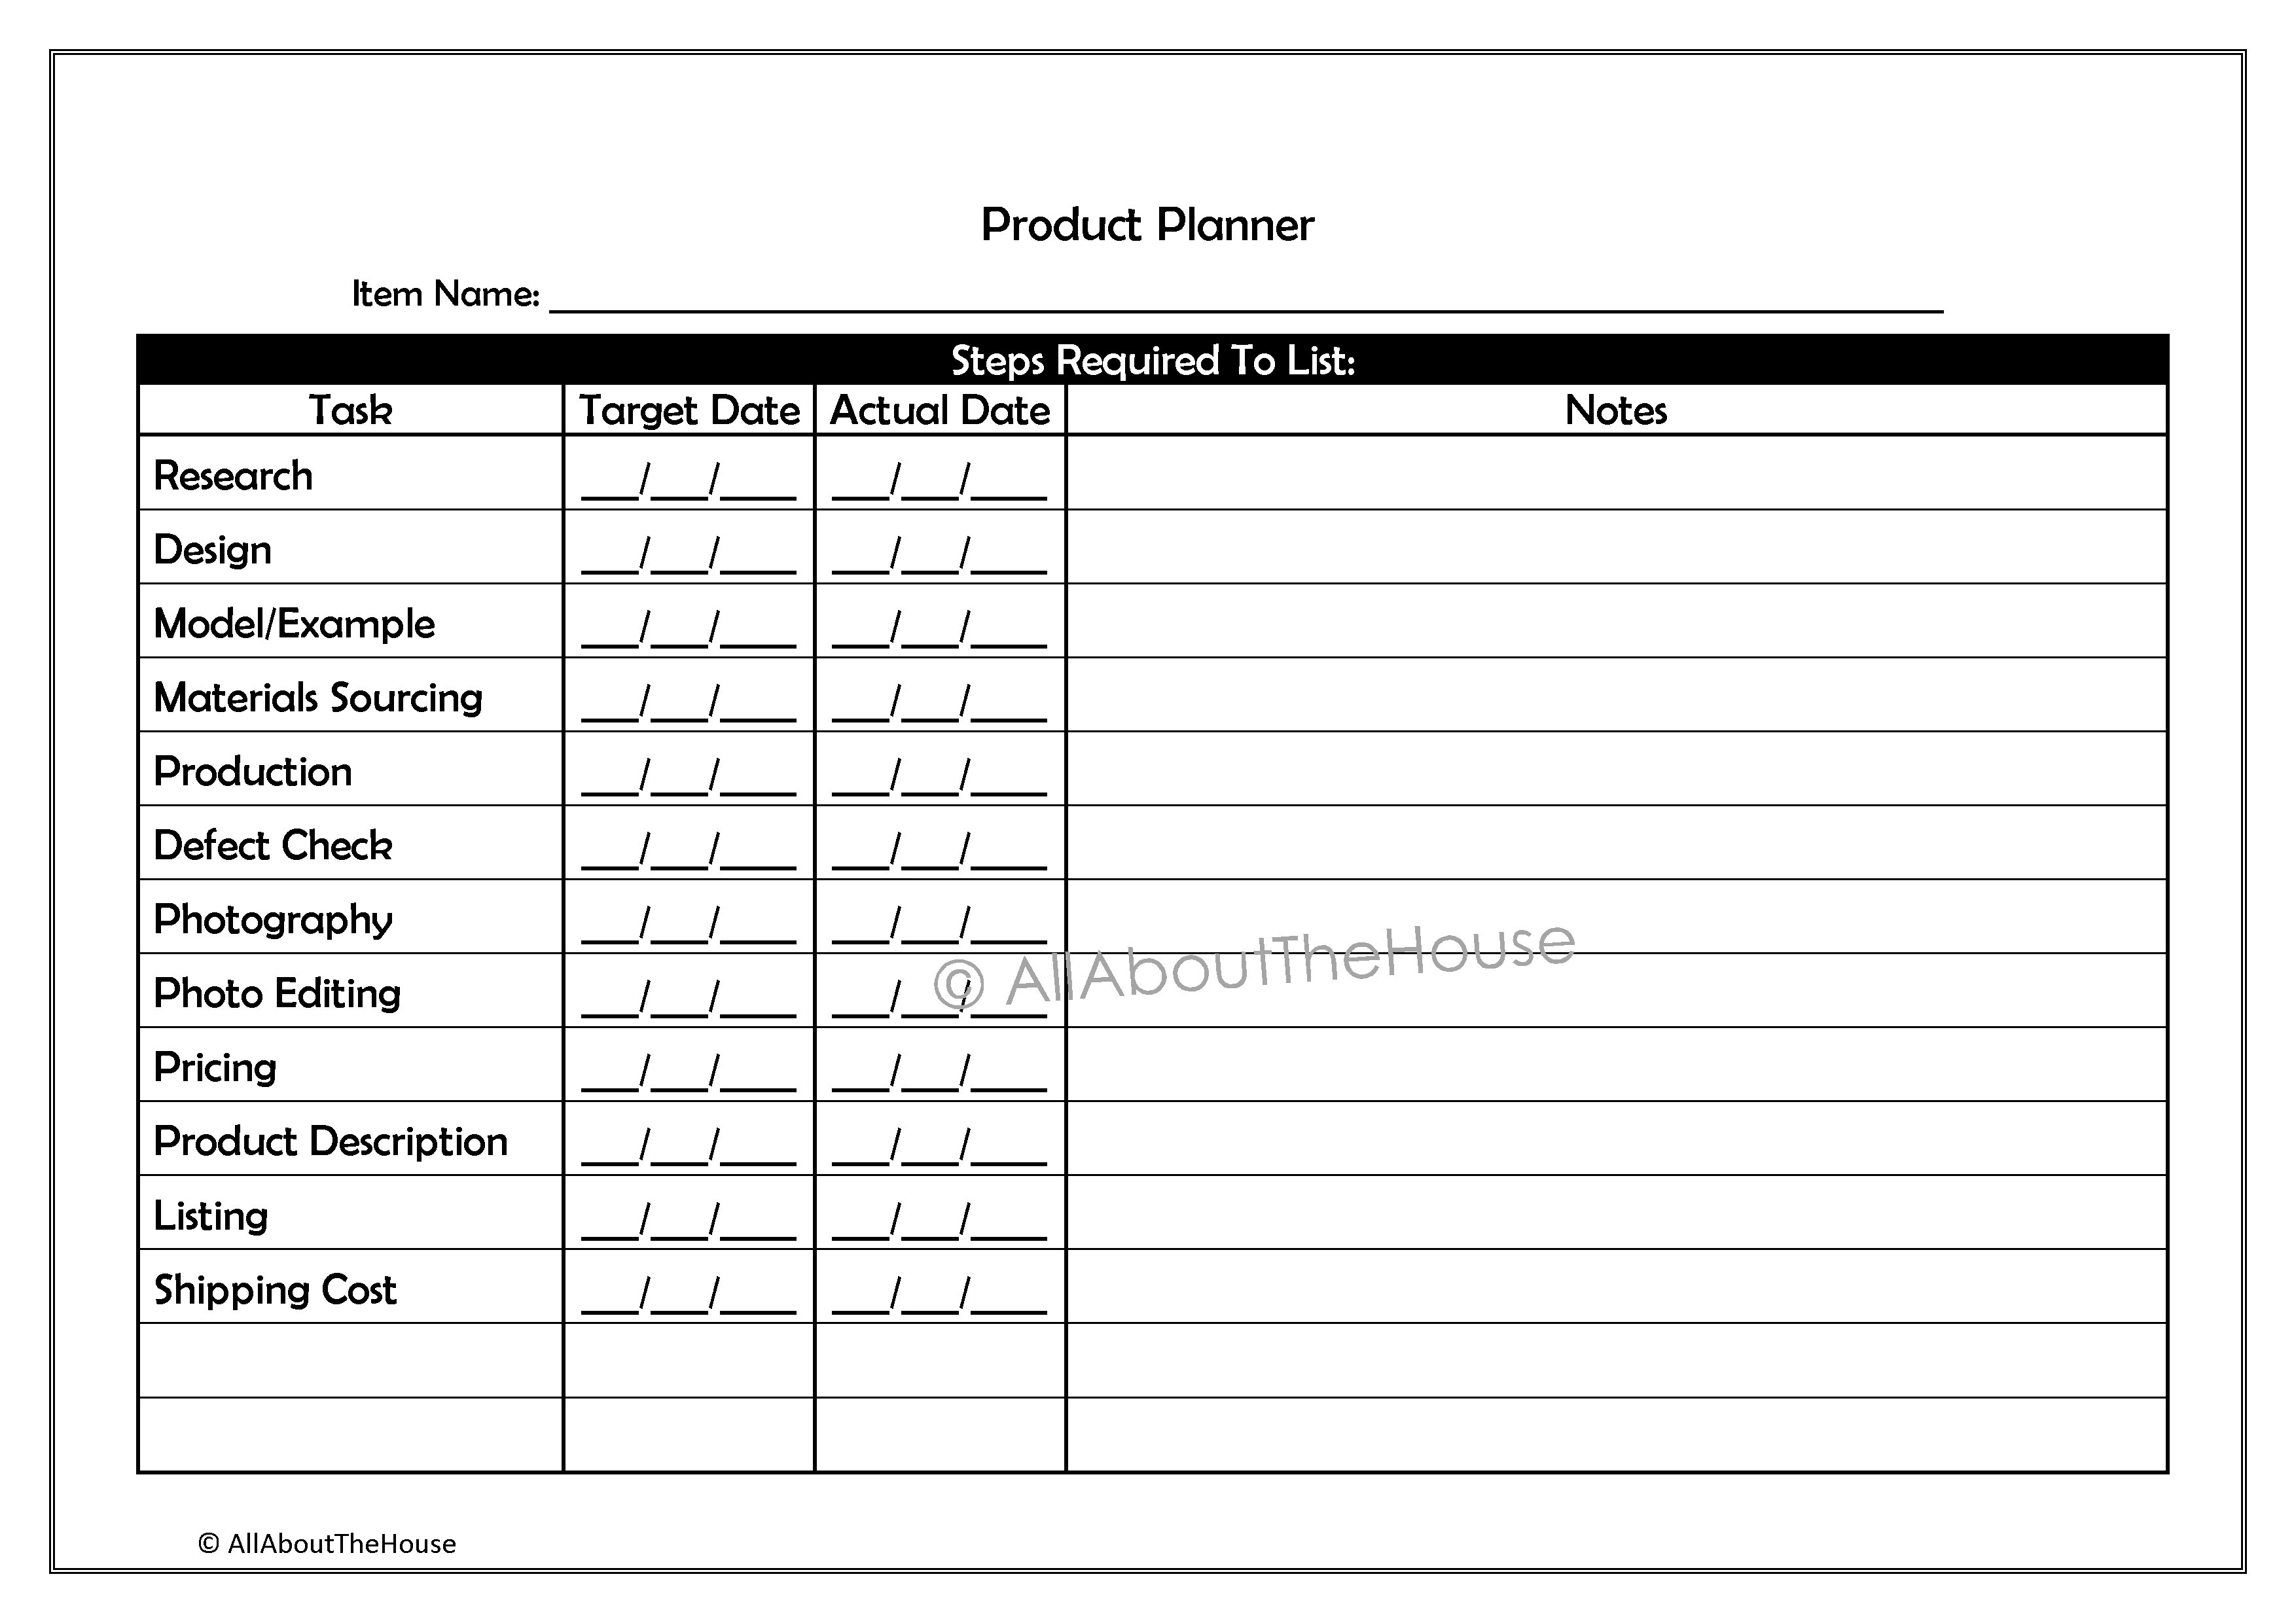 194. Product Planner p.1